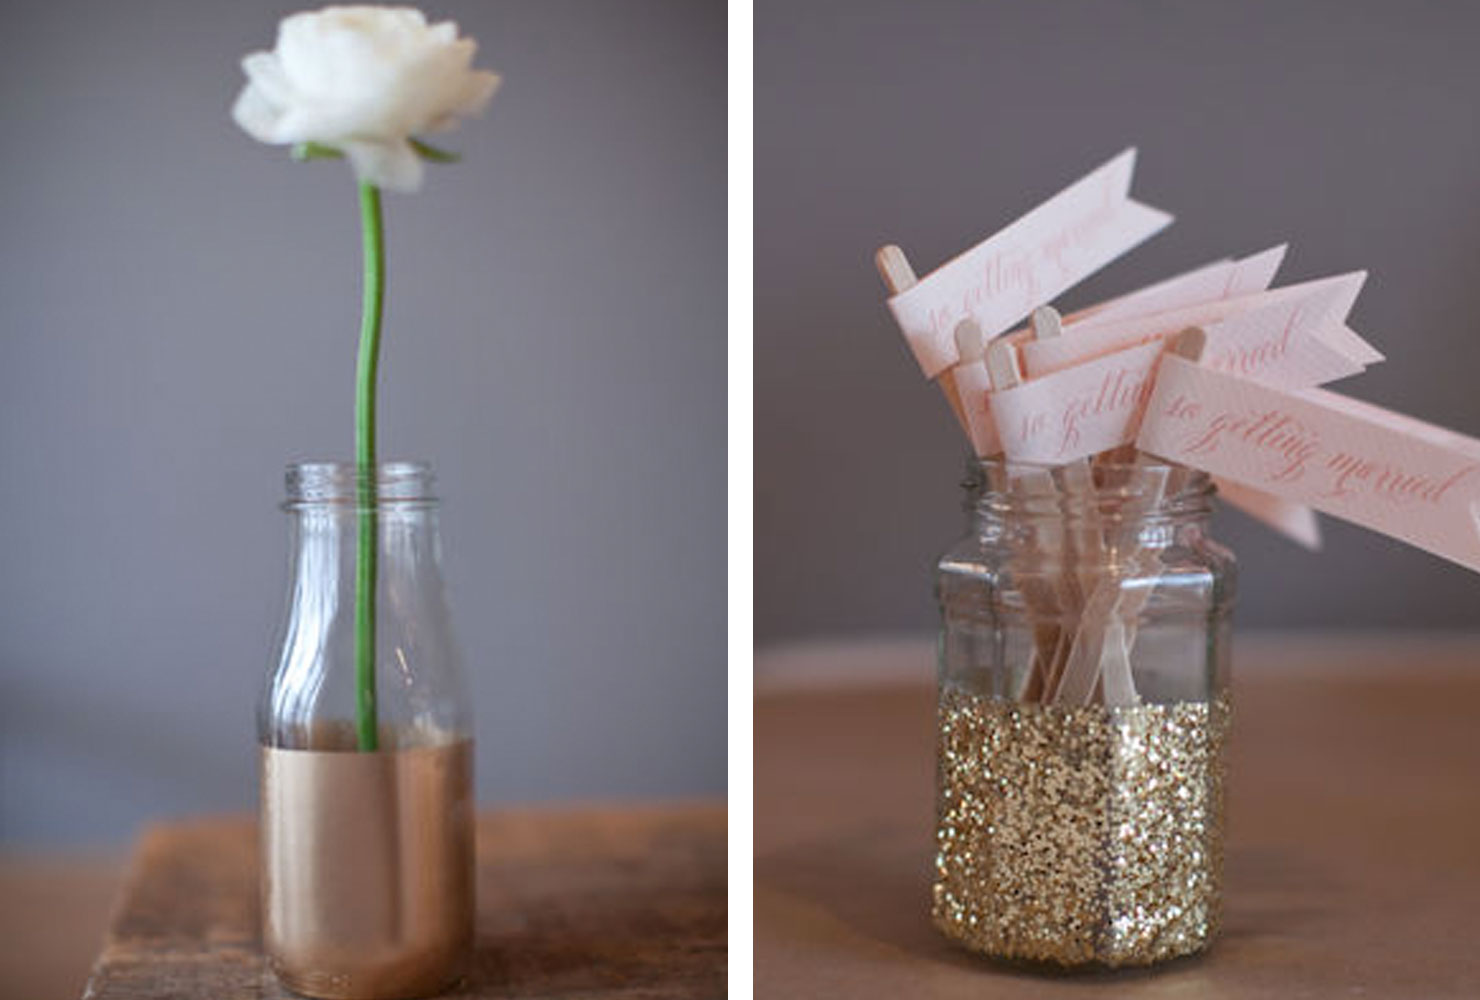 Gold dipped flower vases and jars